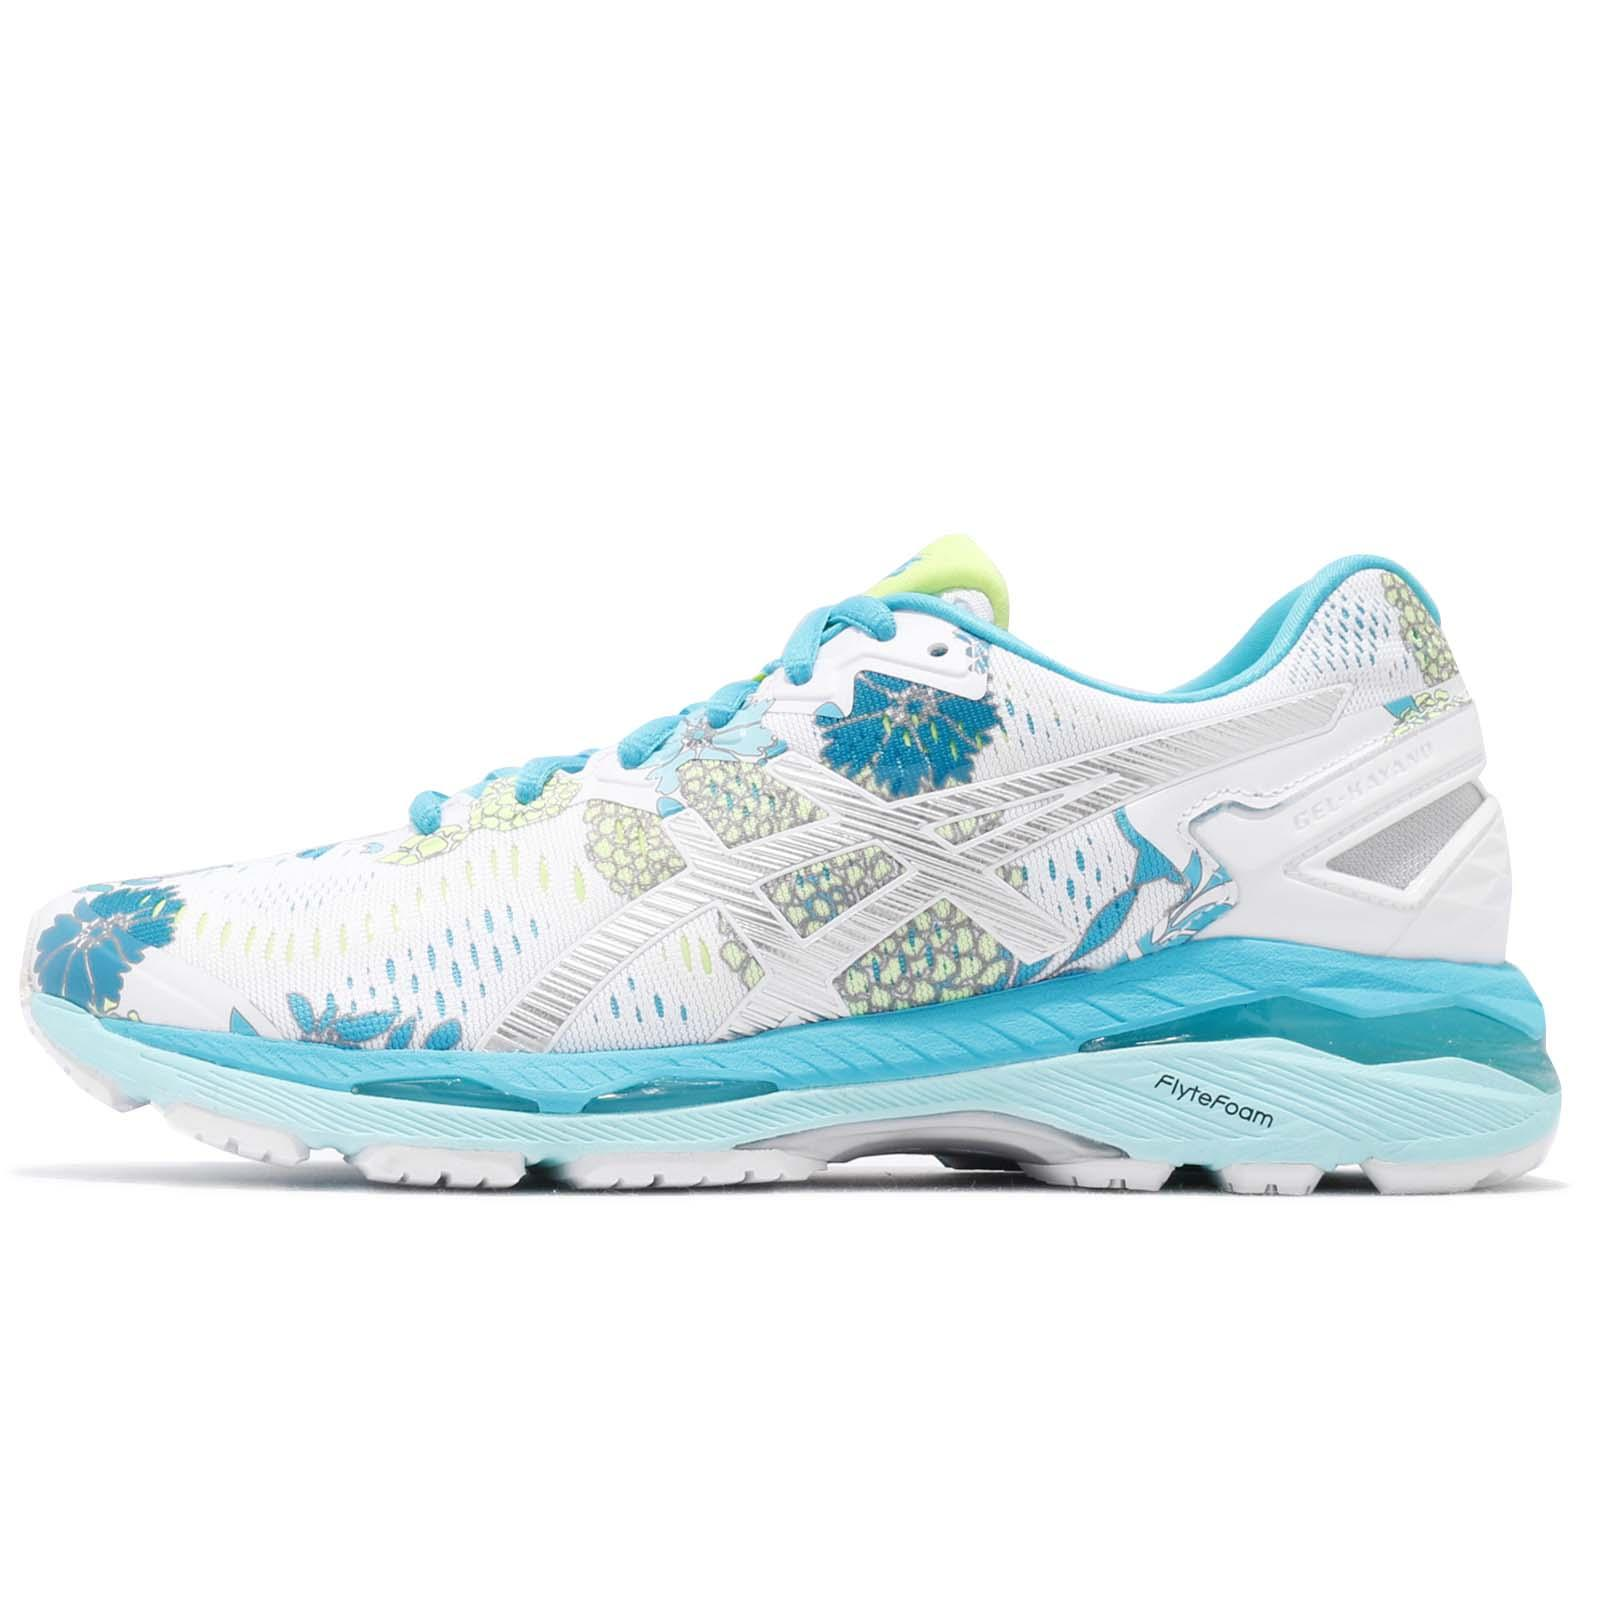 48e1a7f575 Asics Gel-Kayano 23 White Silver Blue Floral Women Running Shoes T6A5N-0193